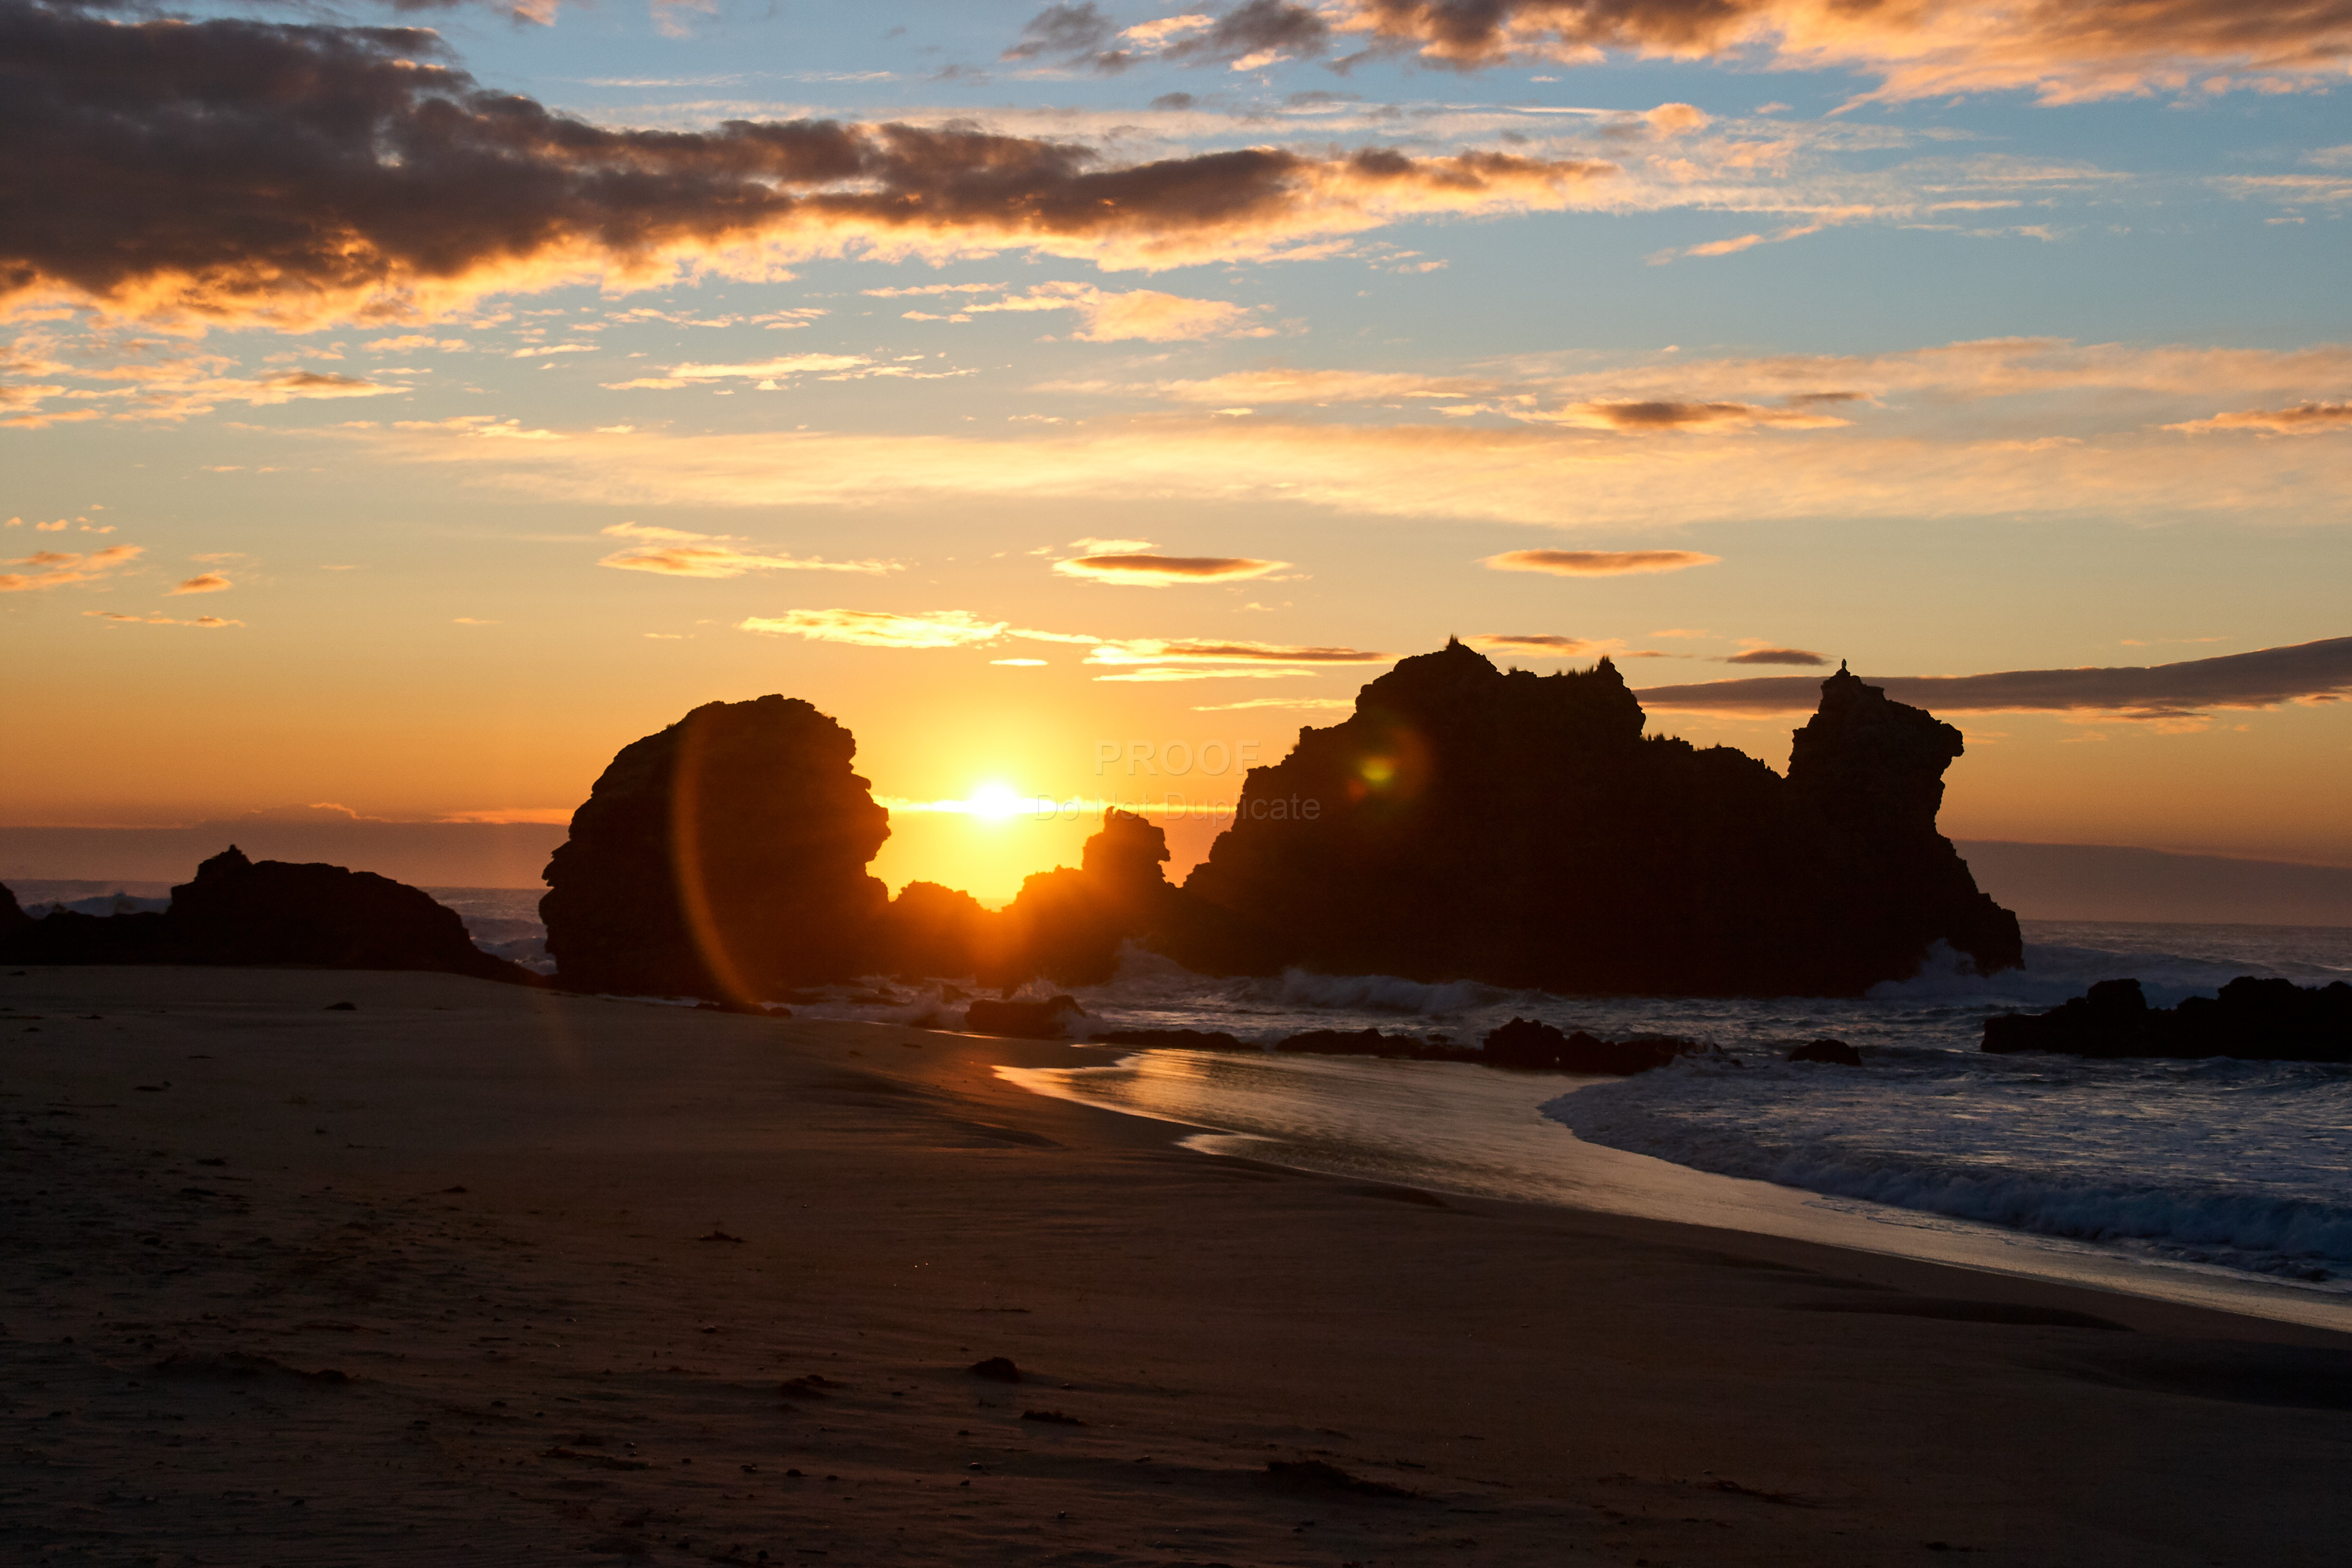 Rocky_beach_sunrise_5052